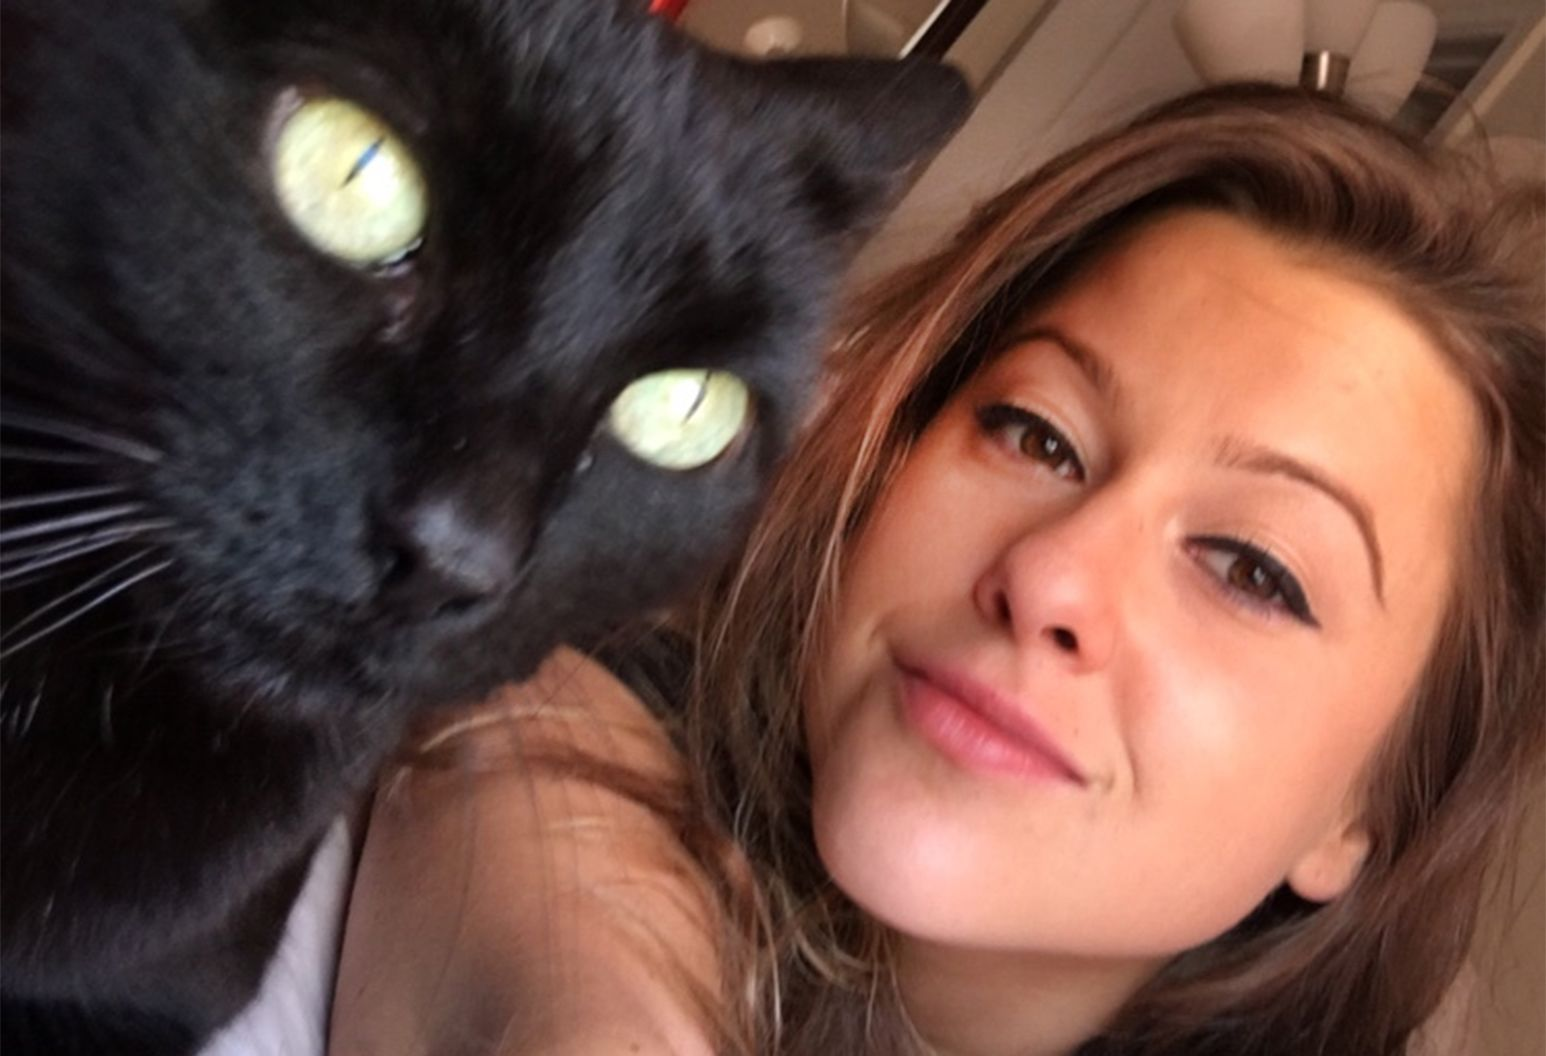 A smiling woman takes a picture with her black cat.